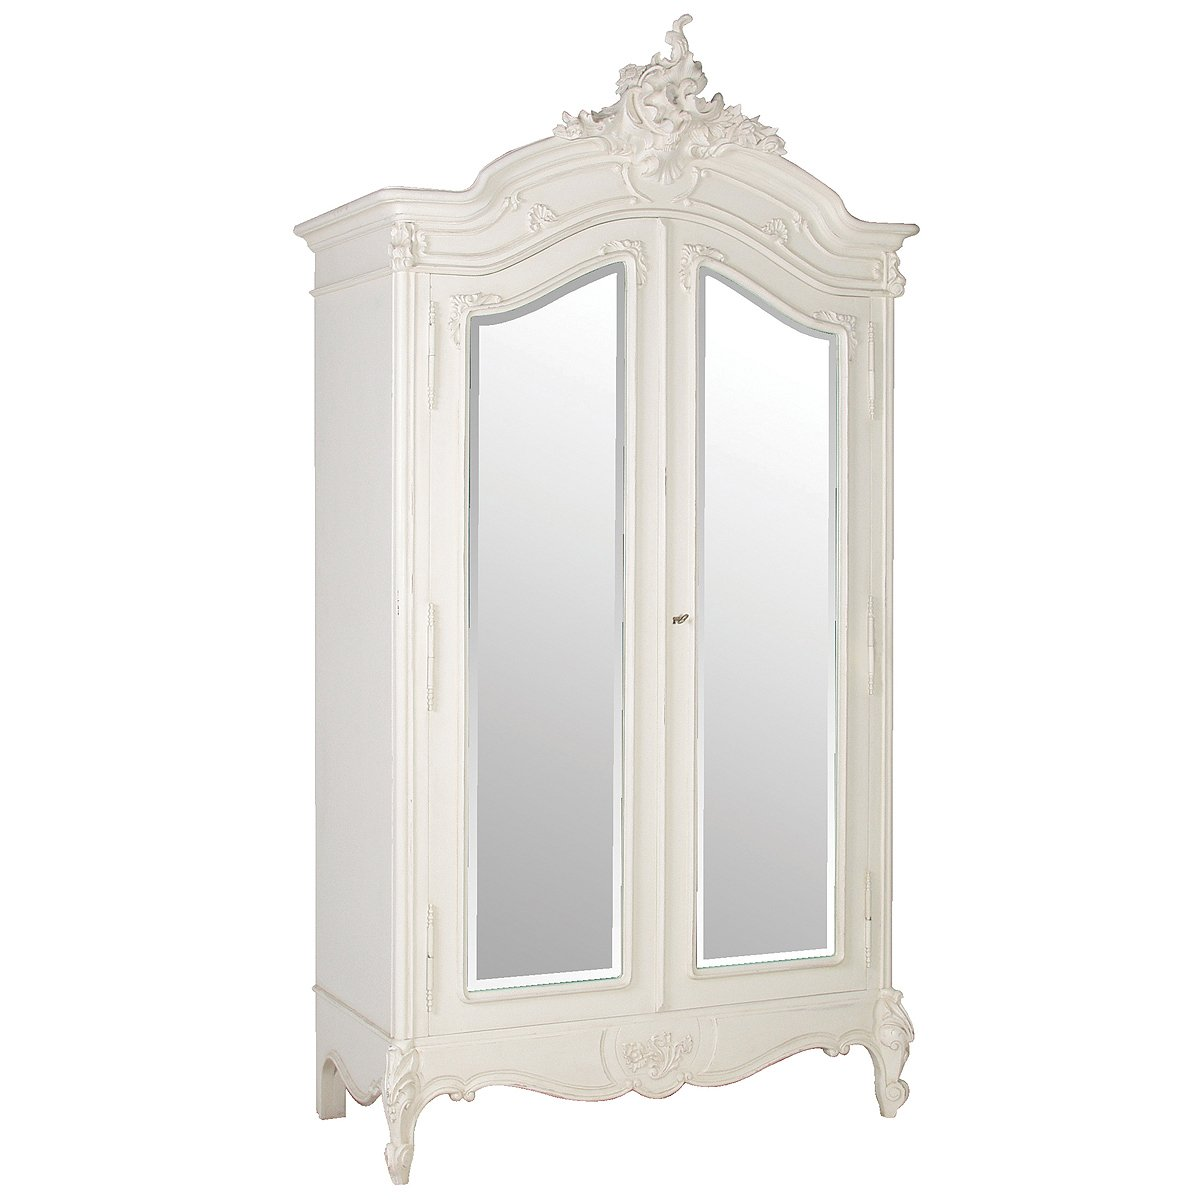 Provencal White 2-Door Mirrored Armoire, French Bedroom ...